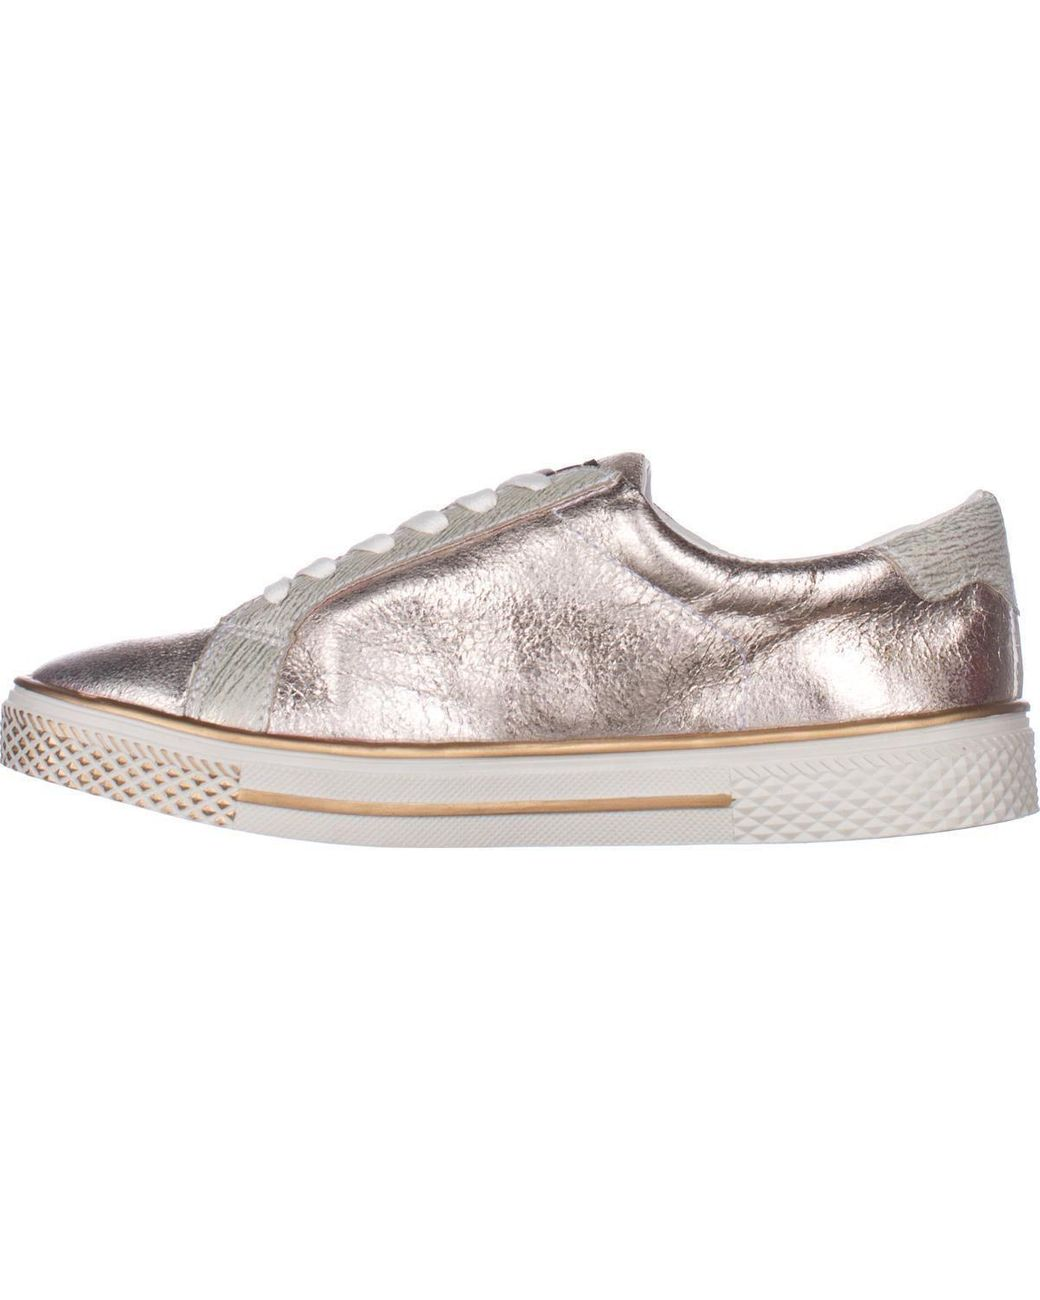 Bebe Womens Destine Low Top Lace Up Fashion Sneakers